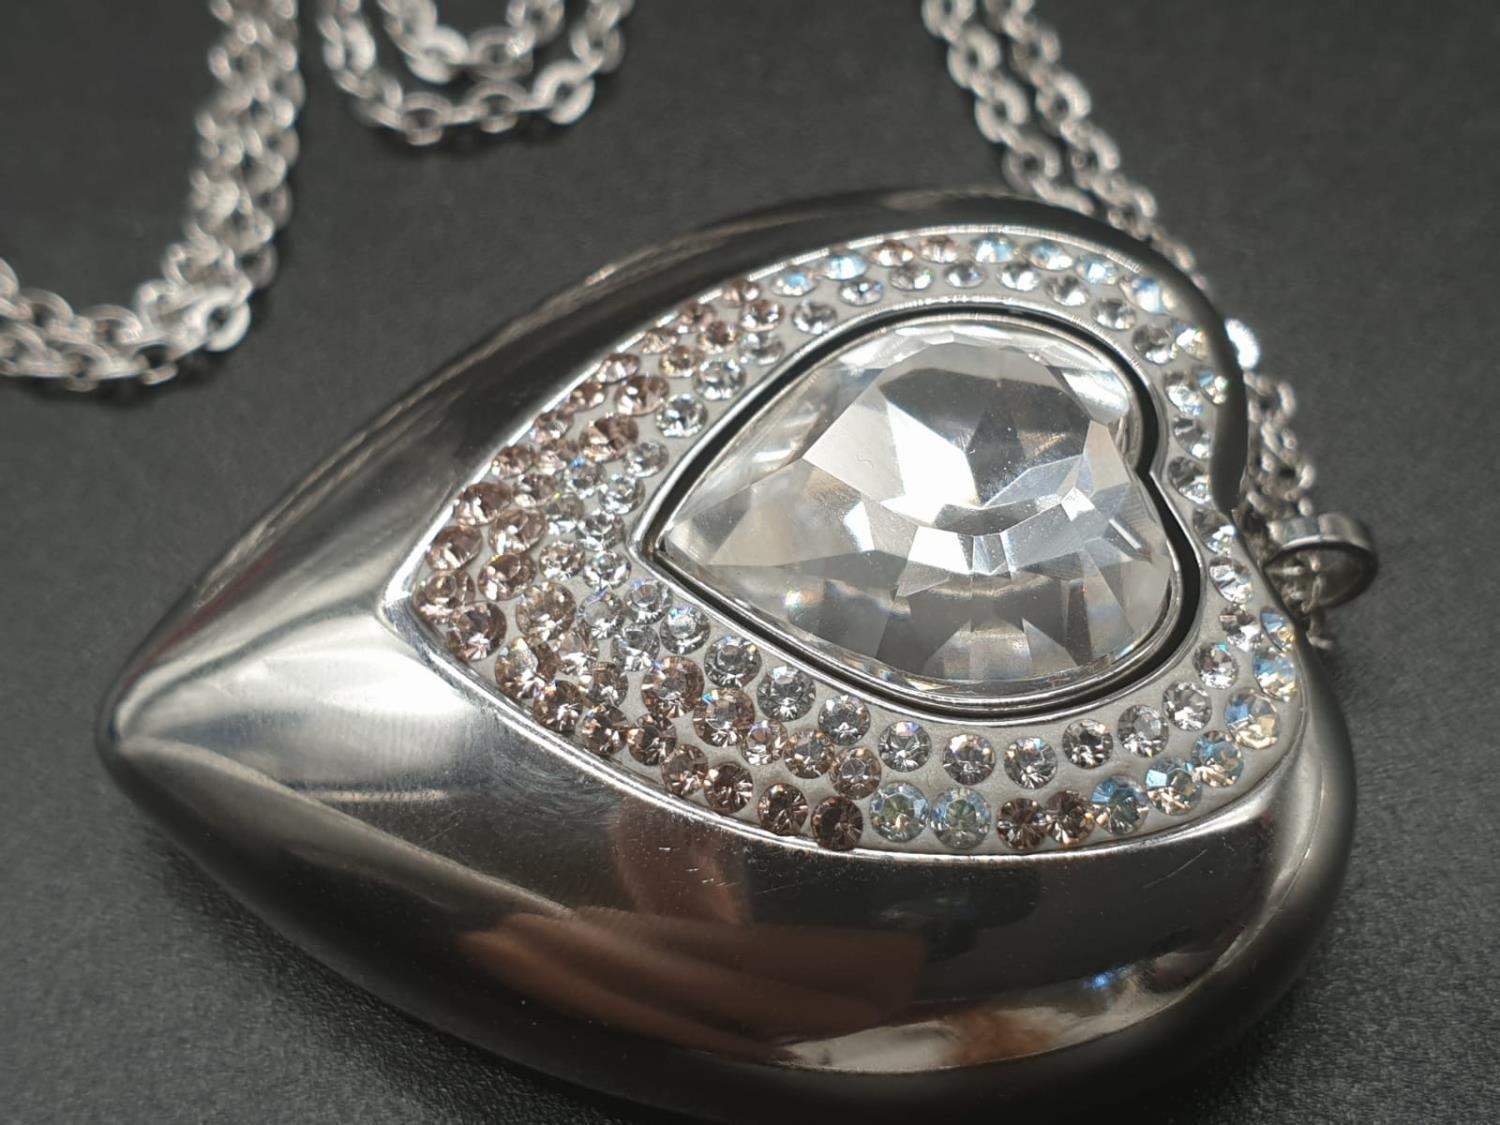 Swarovski Women's Metallic Active Crystal Heart-Shaped Pendant with built-in 8GB USB. 76cm As new, - Image 3 of 10